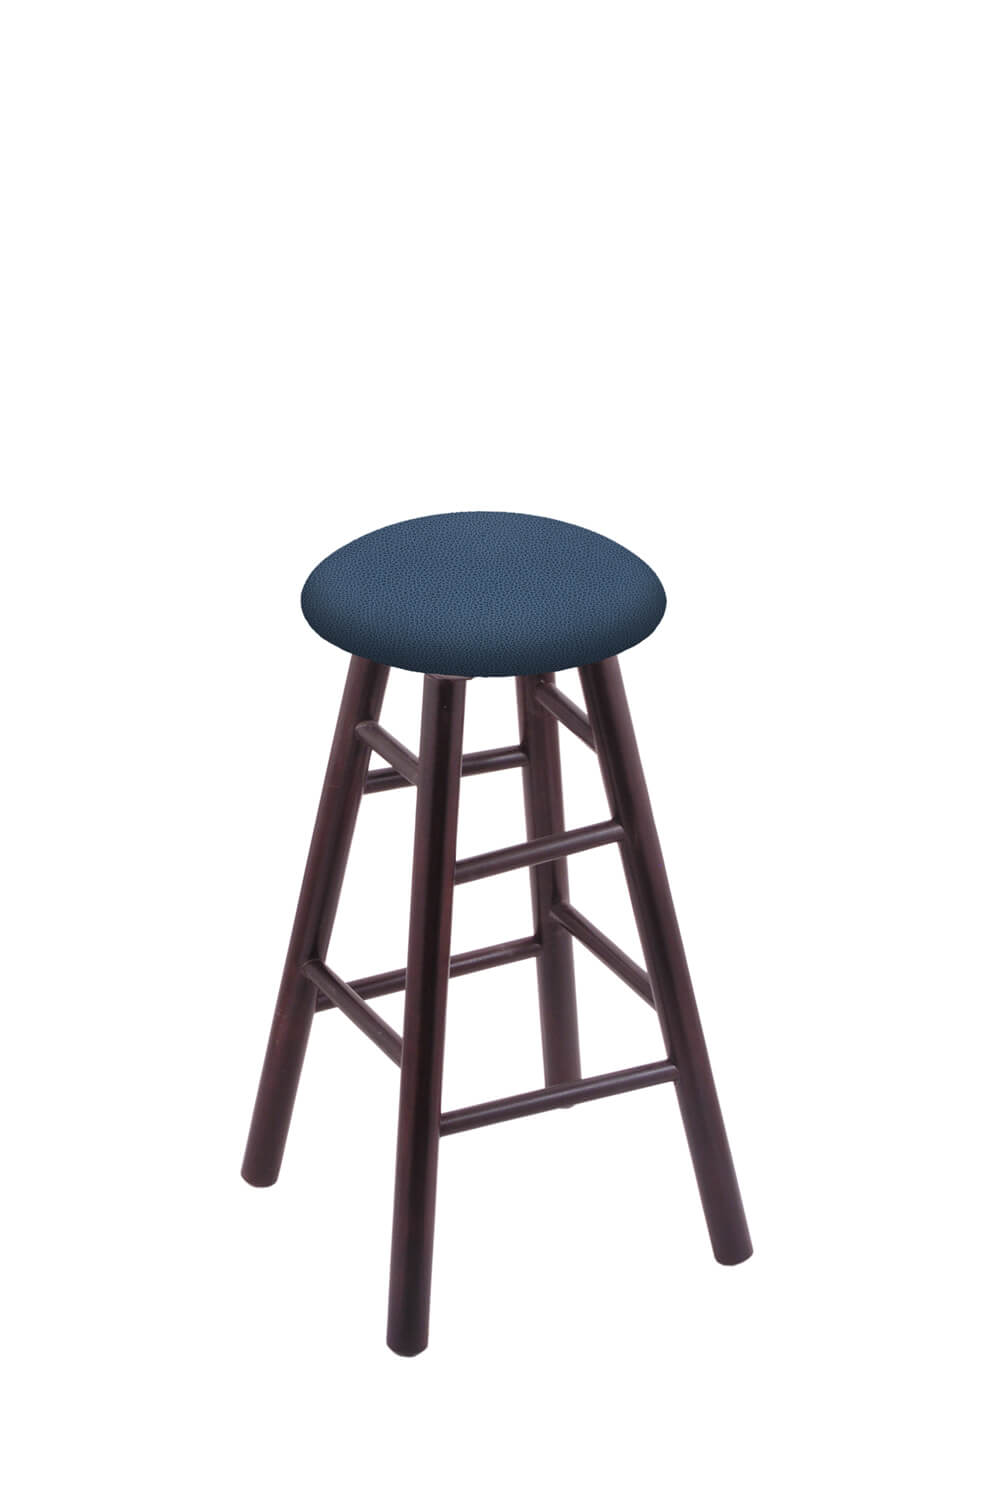 Admirable Round Cushion Domestic Hardwood Backless Swivel Stool With Smooth Legs Short Links Chair Design For Home Short Linksinfo